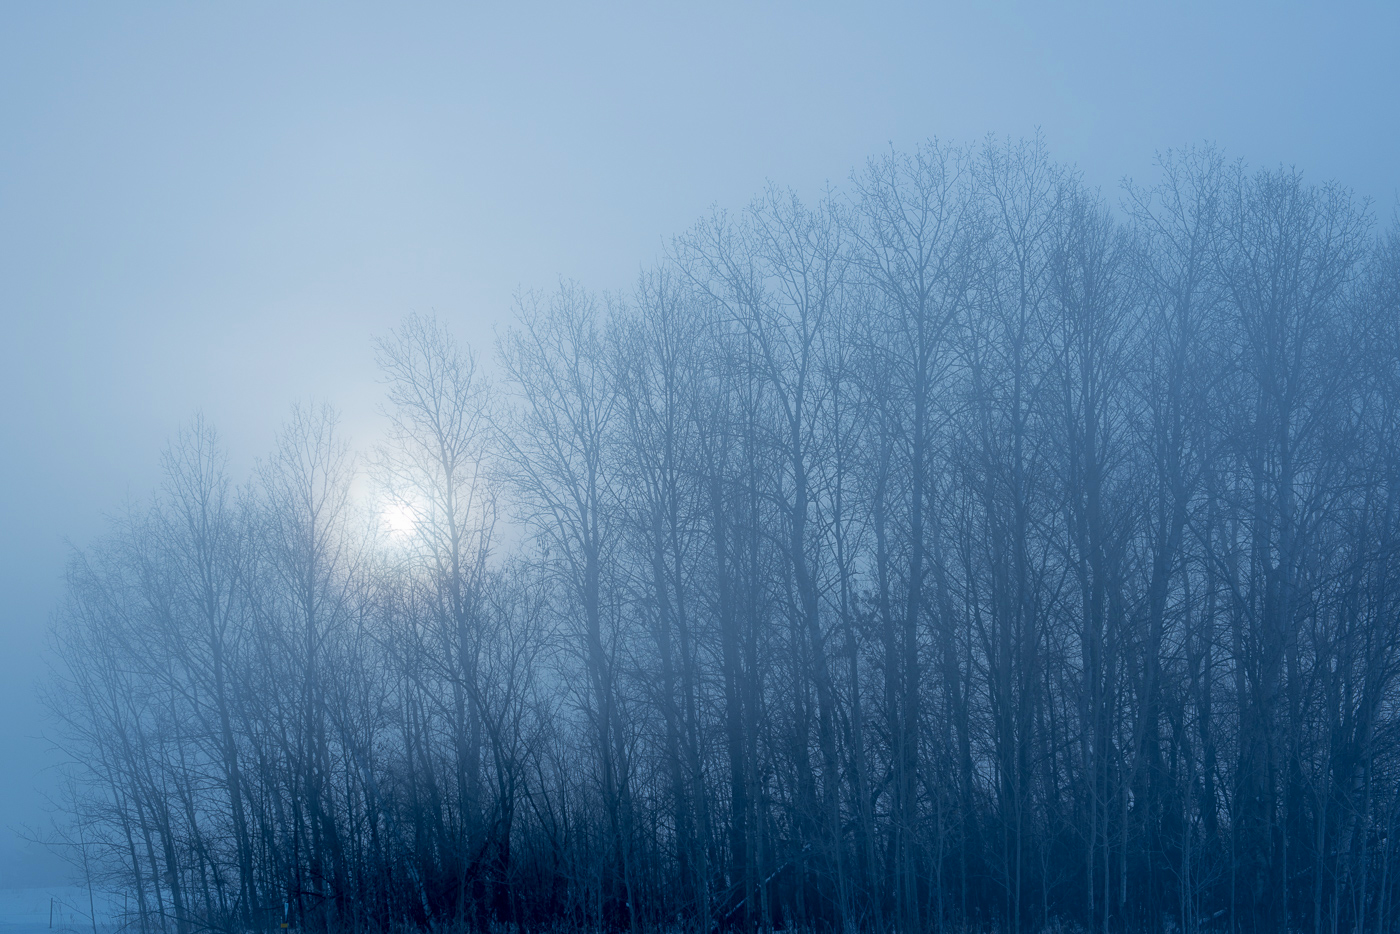 Fog and rising sun over forest, Chisago County, Minnesota